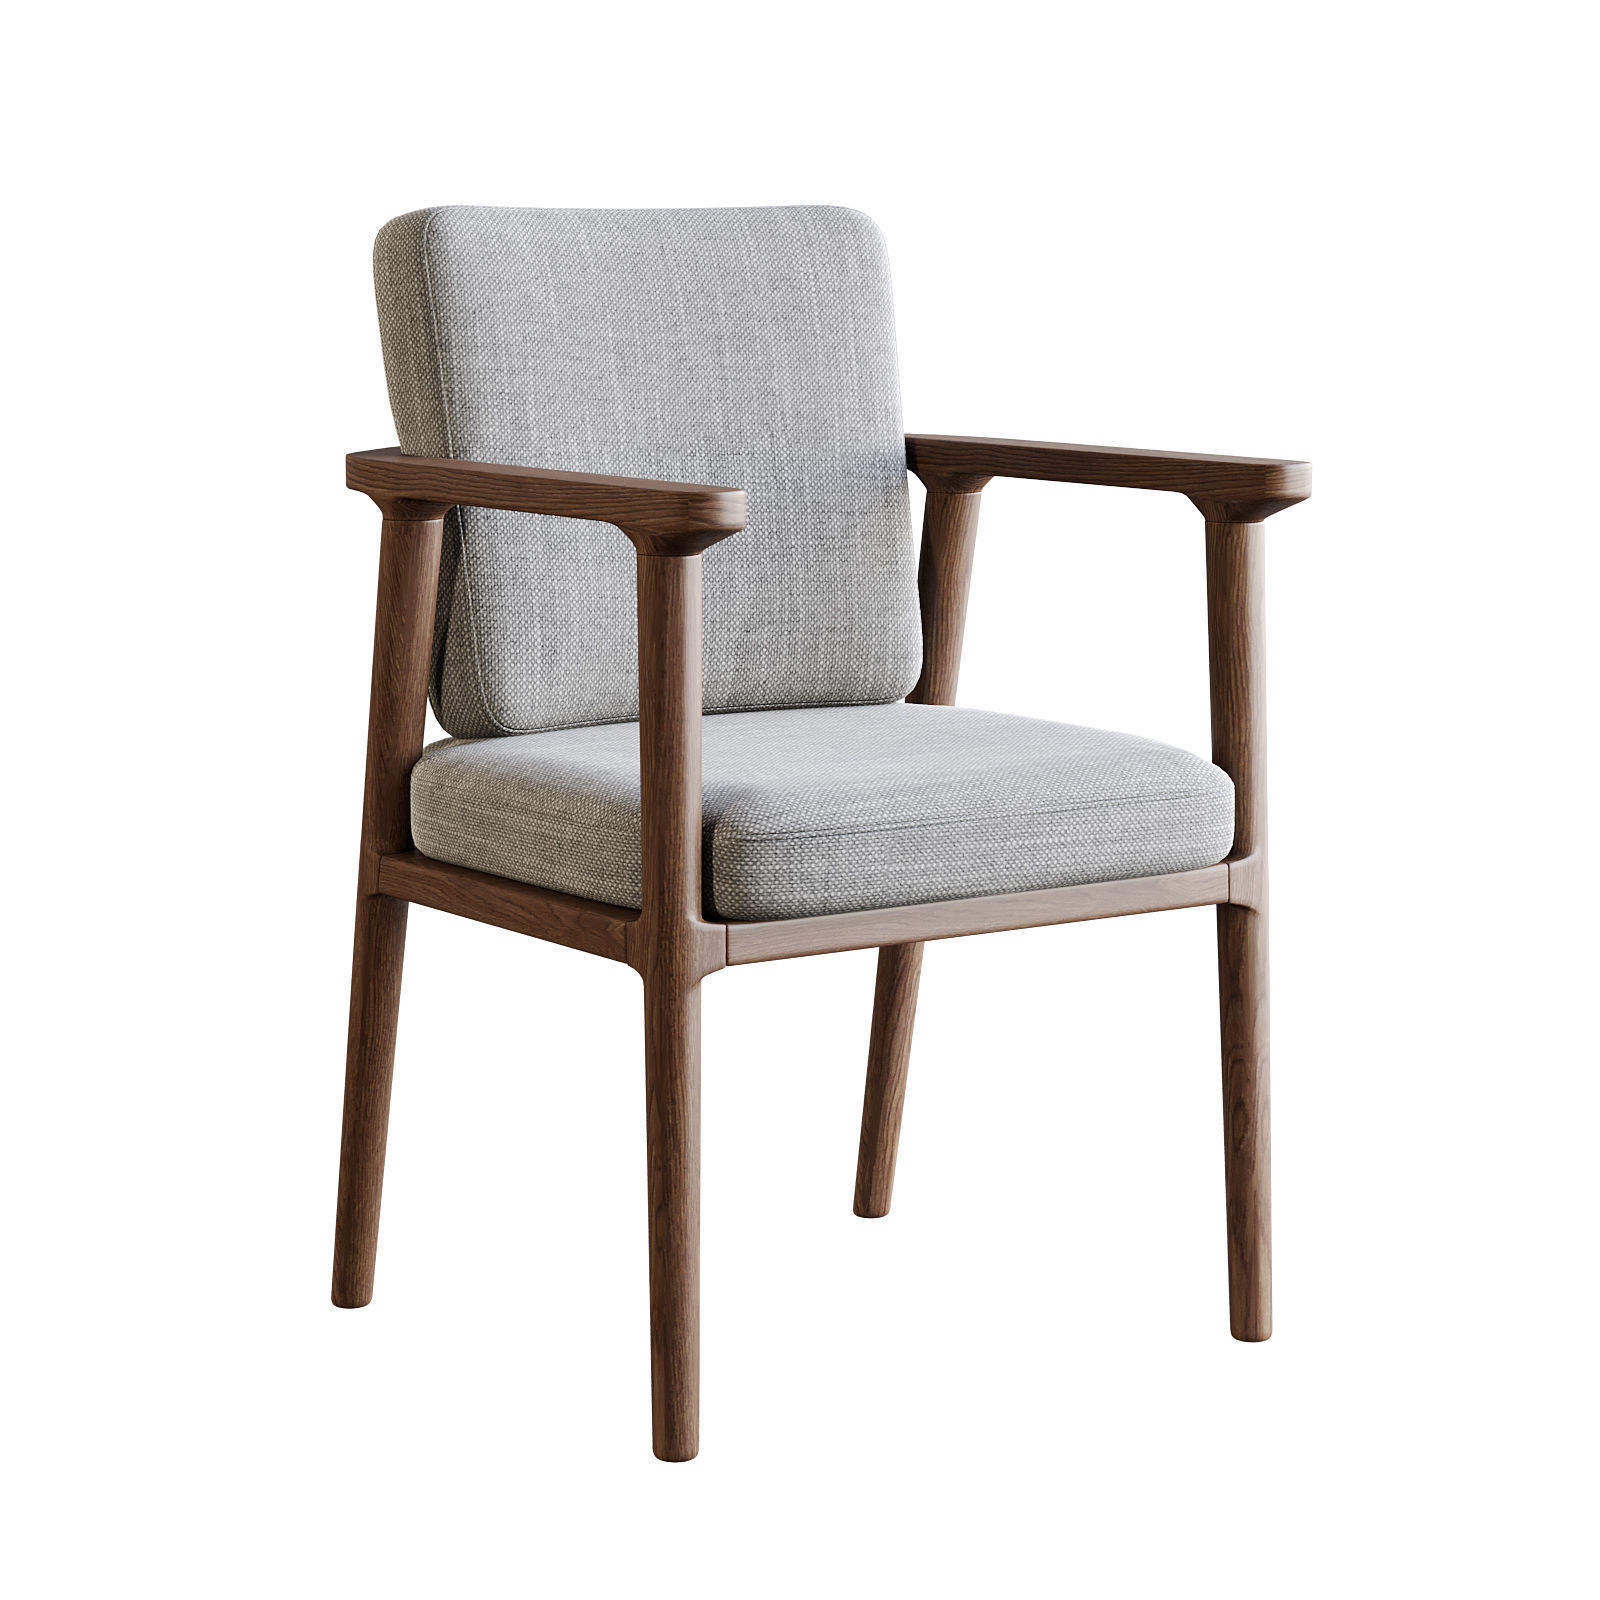 Dining chair 128